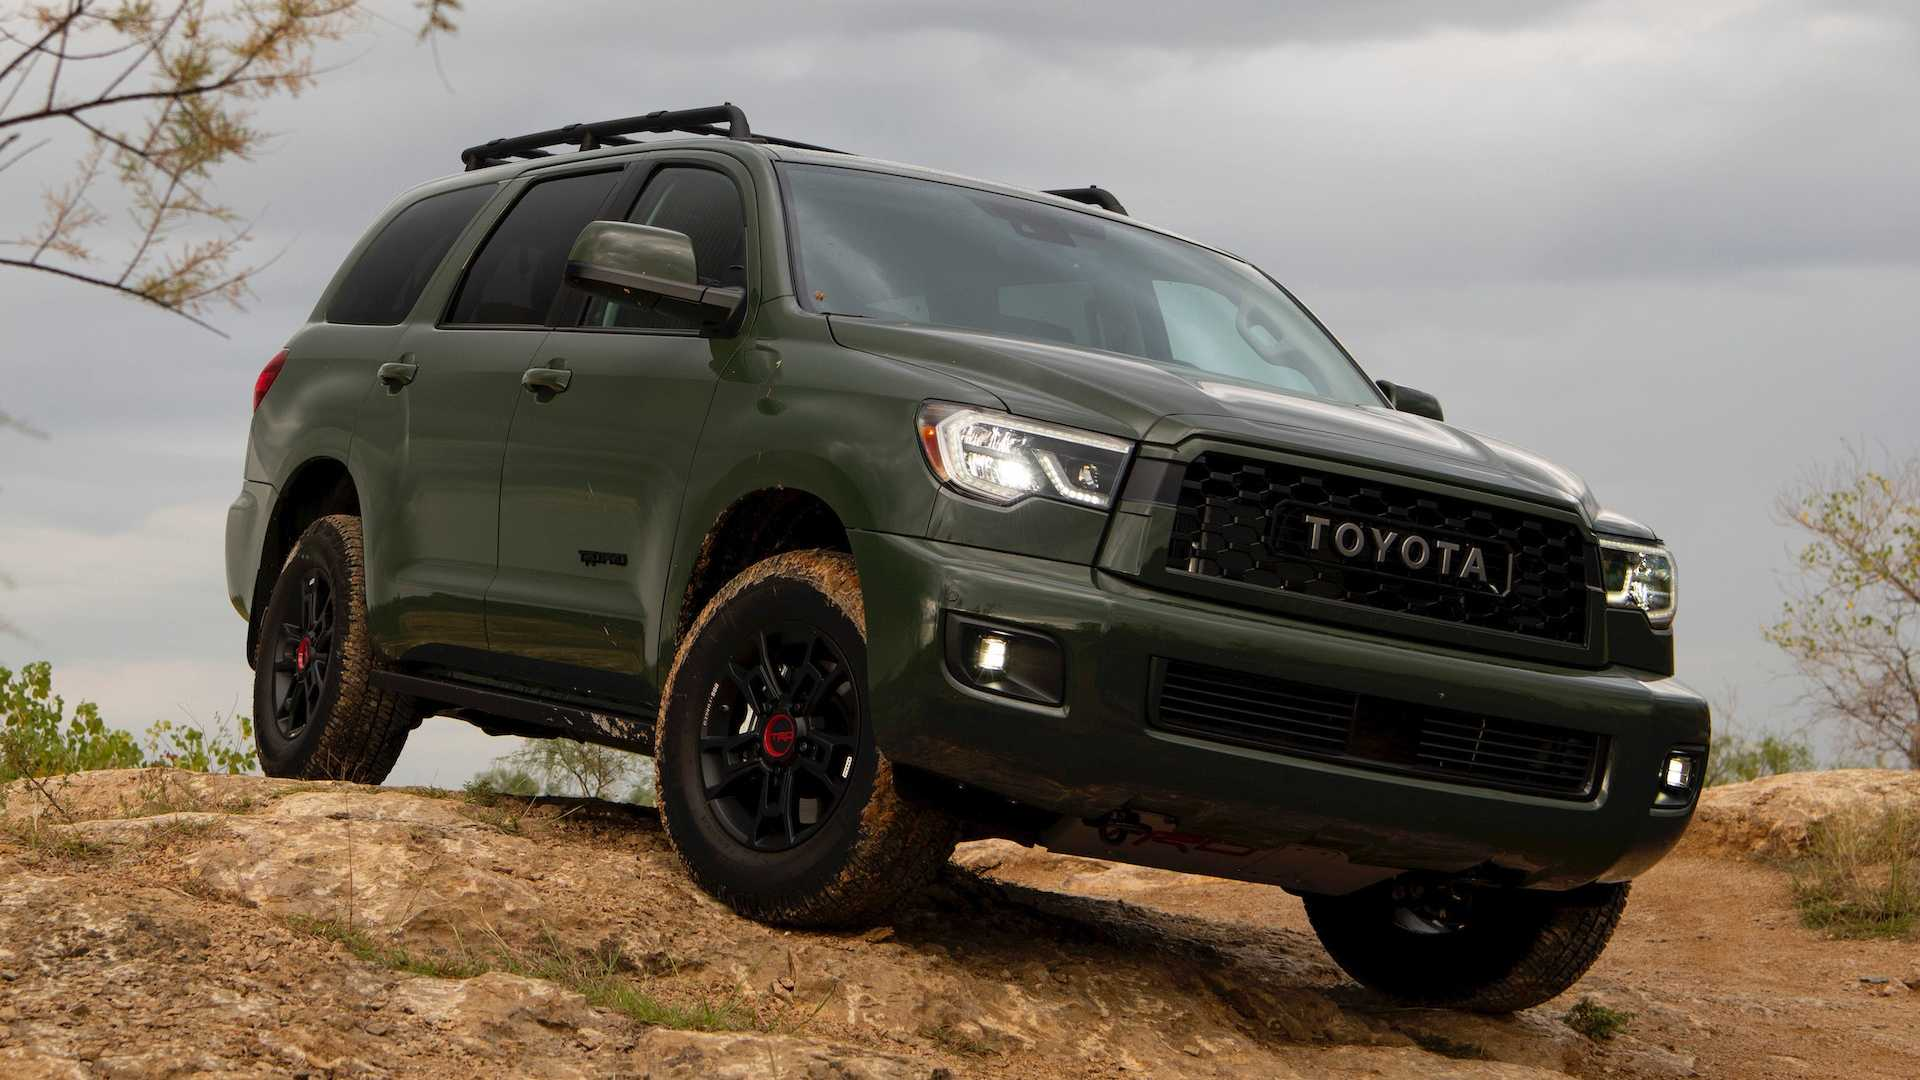 Toyota Tundra Towing Capacity >> 2020 Toyota Sequoia TRD Pro First Drive: Adventure, Party ...